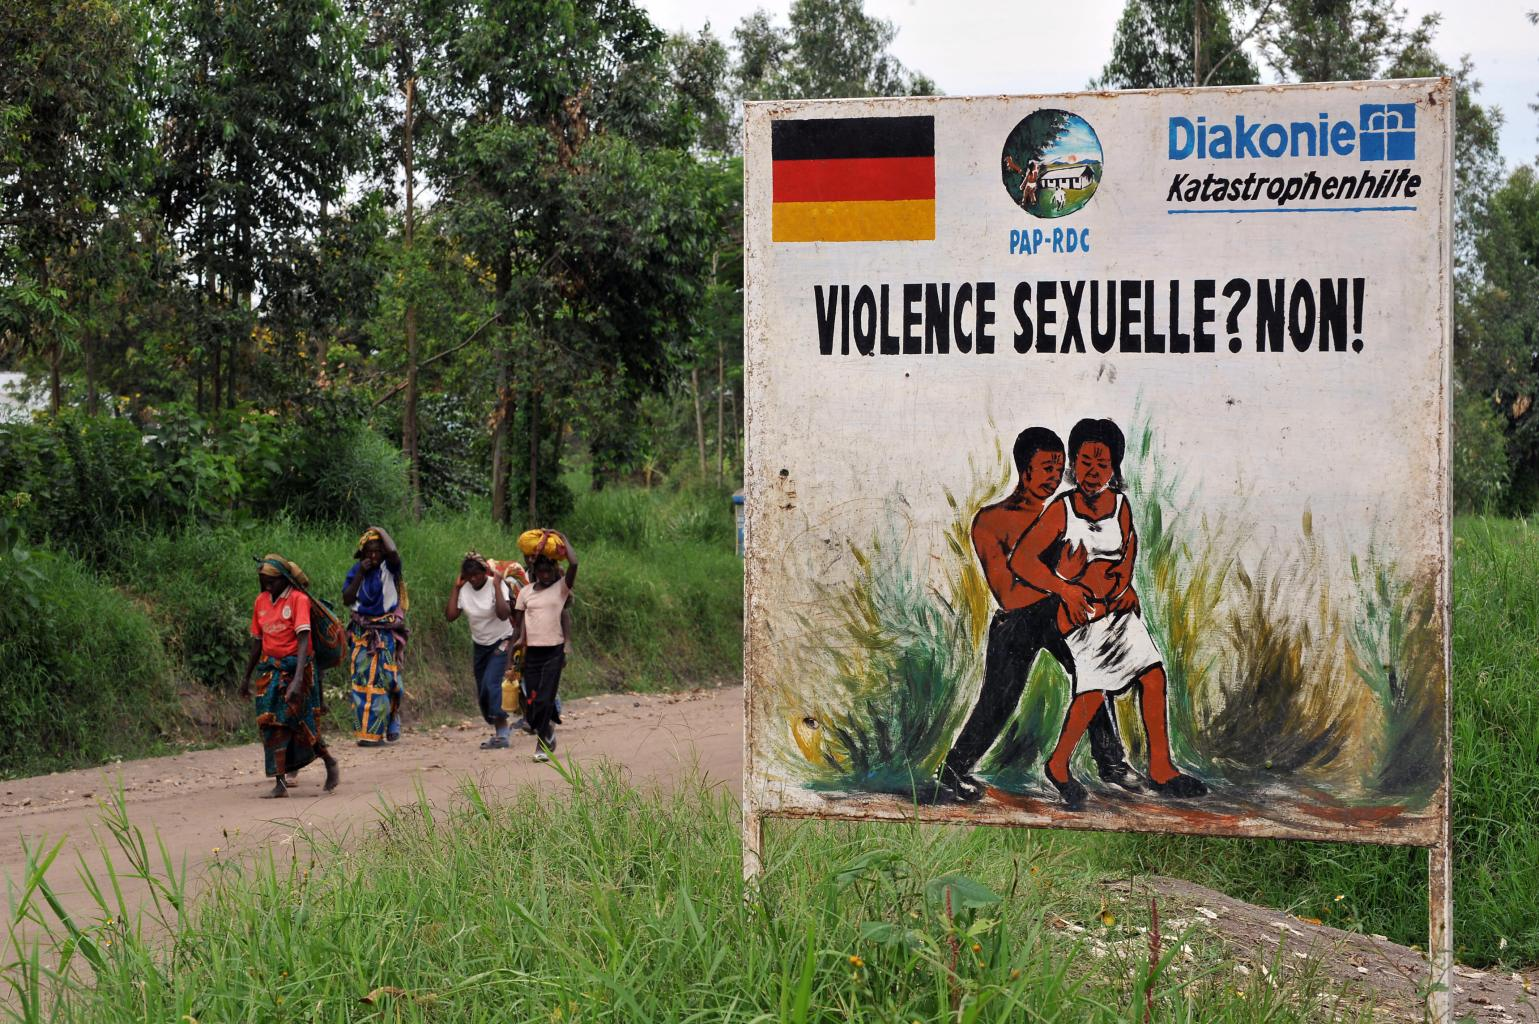 Congolese women walk past a sign opposing sexual violence on December 4, 2008 in Nyamilima, in Nord-Kivu, in the east of the Democratic Republic of Congo (DRC). There are many cases of rape and sexual vioence against women during recent fighting in this area. Months of fighting pitting Nkunda's rebels against government troops and various militia groups have displaced some 250,000 people in the eastern Congo and triggered a humanitarian crisis that has sparked international concern. AFP PHOTO / PASCAL GUYOT (Photo credit should read PASCAL GUYOT/AFP/Getty Images)